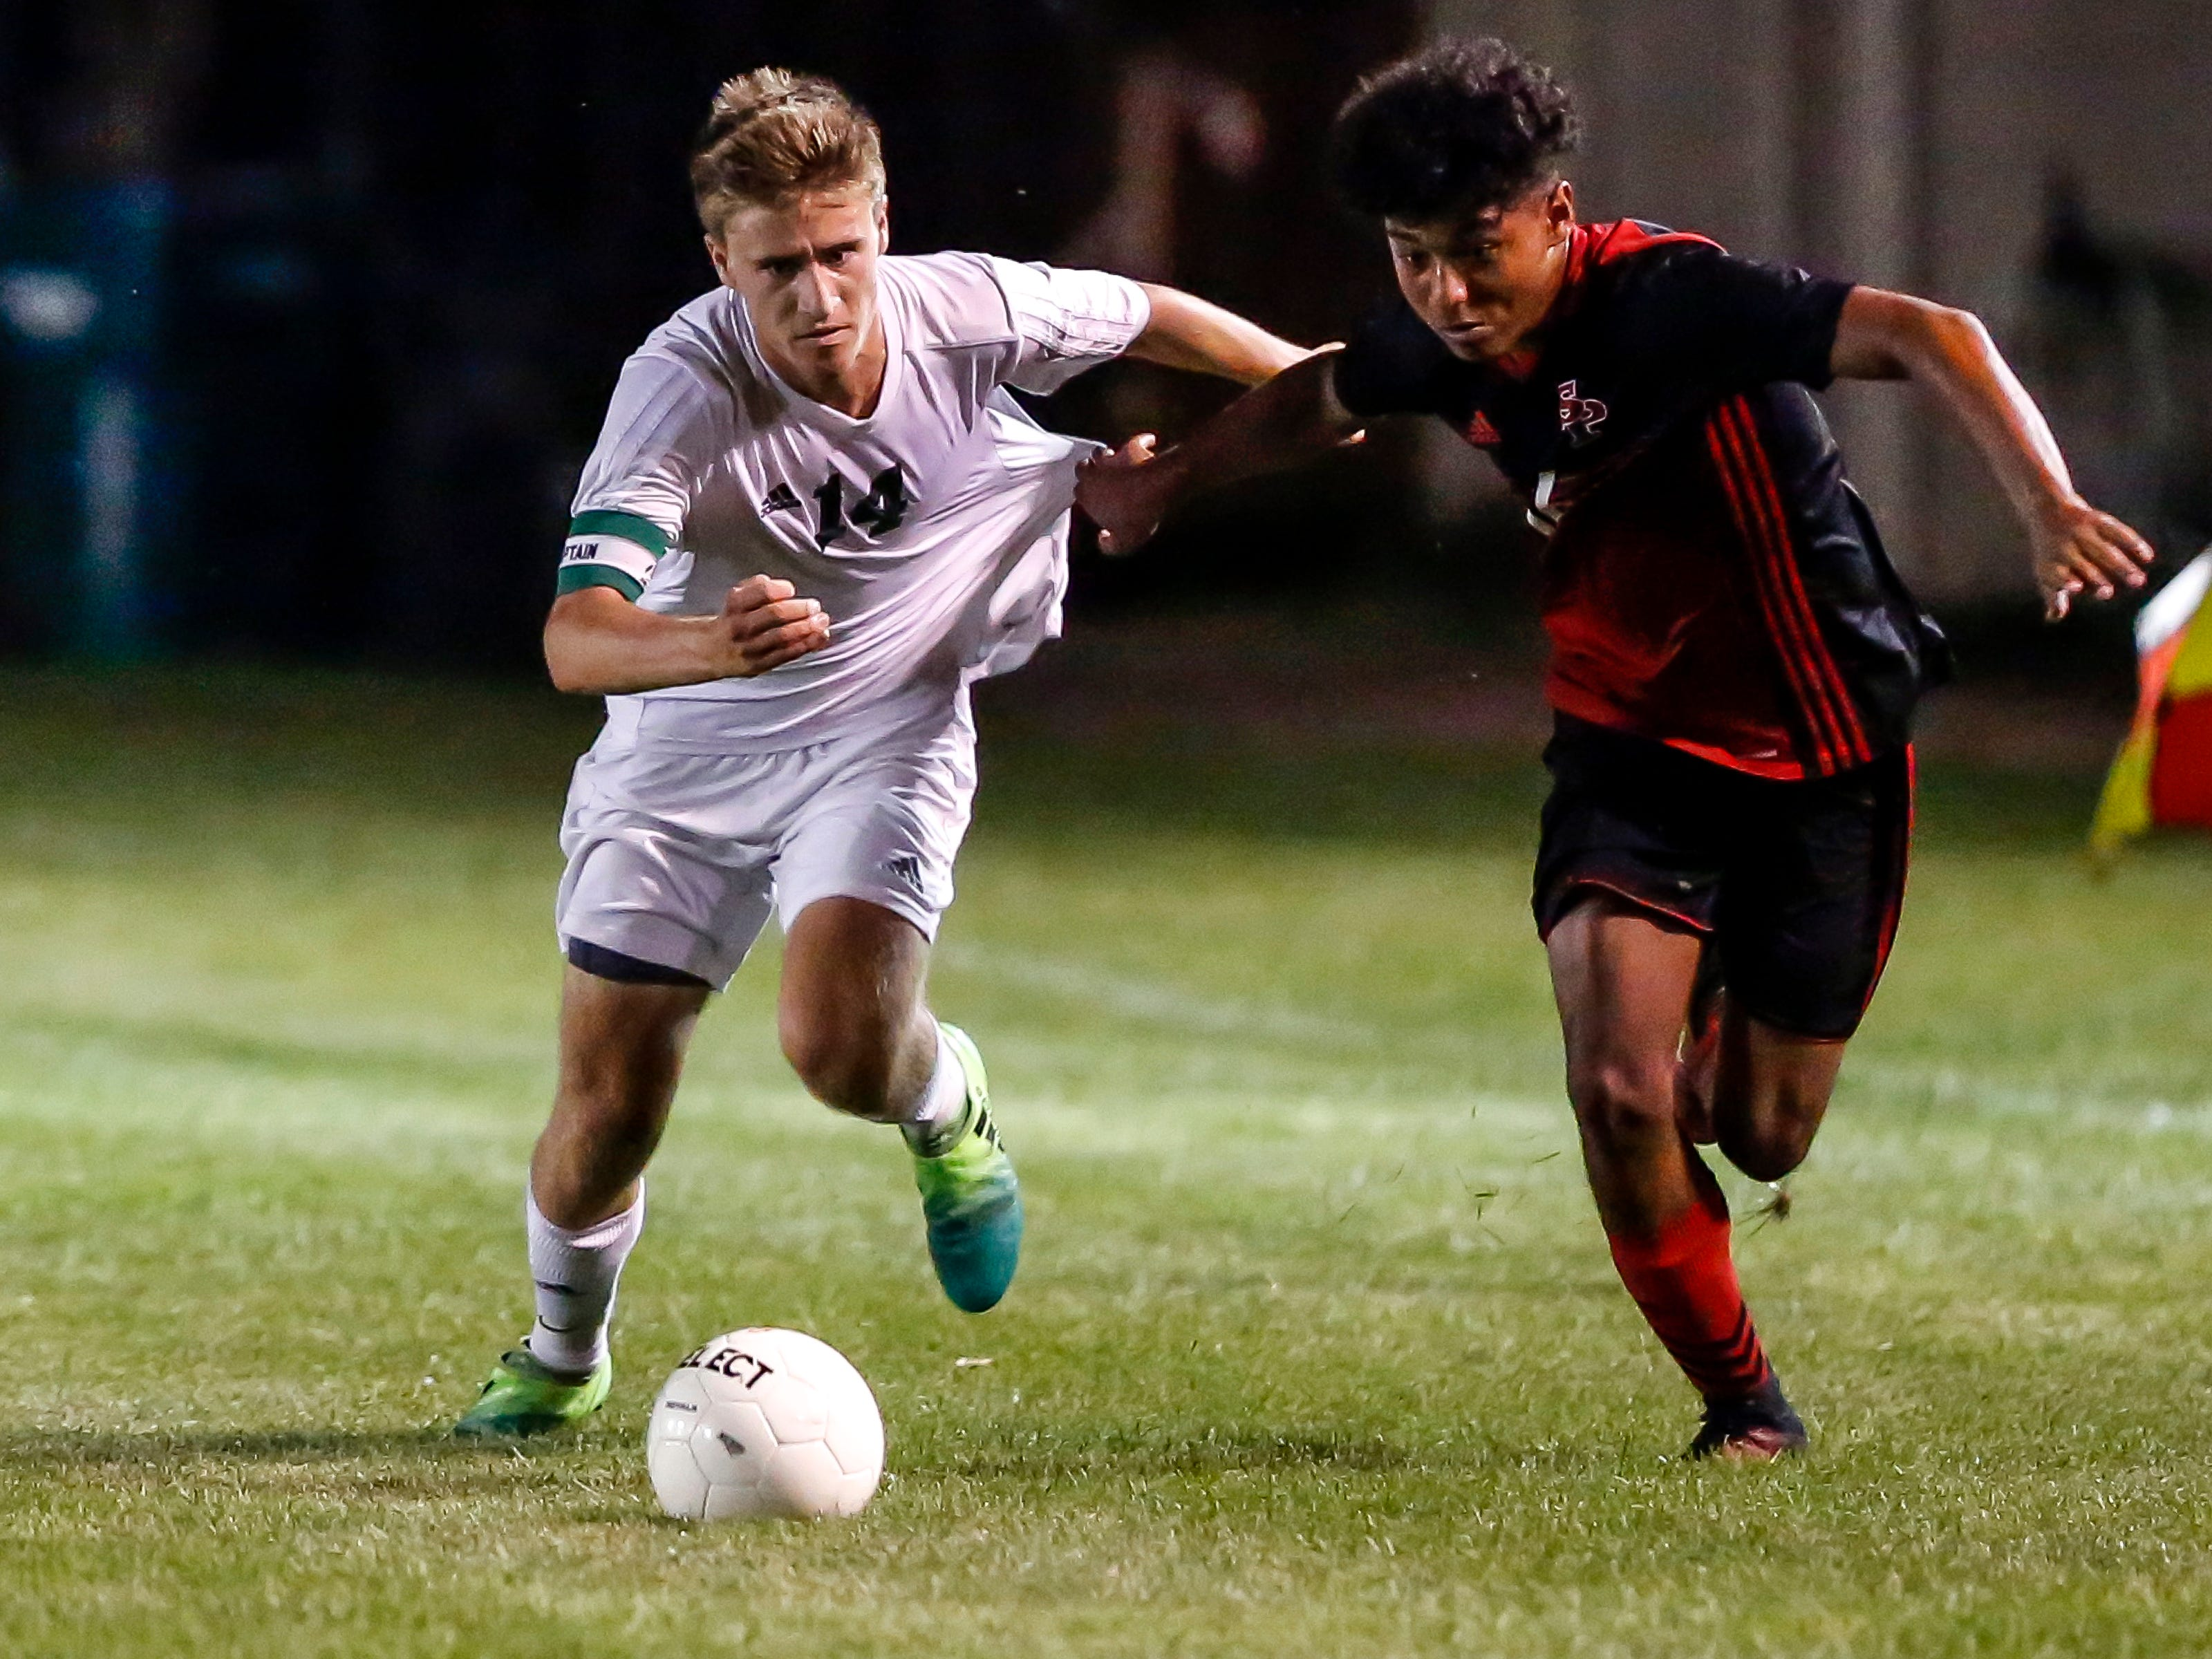 Ethan Stashek of D.C. Everest and Lio Perkins fight for control of the ball during a soccer game between SPASH and D.C. Everest in Stevens Point, Wis., September 13, 2018.